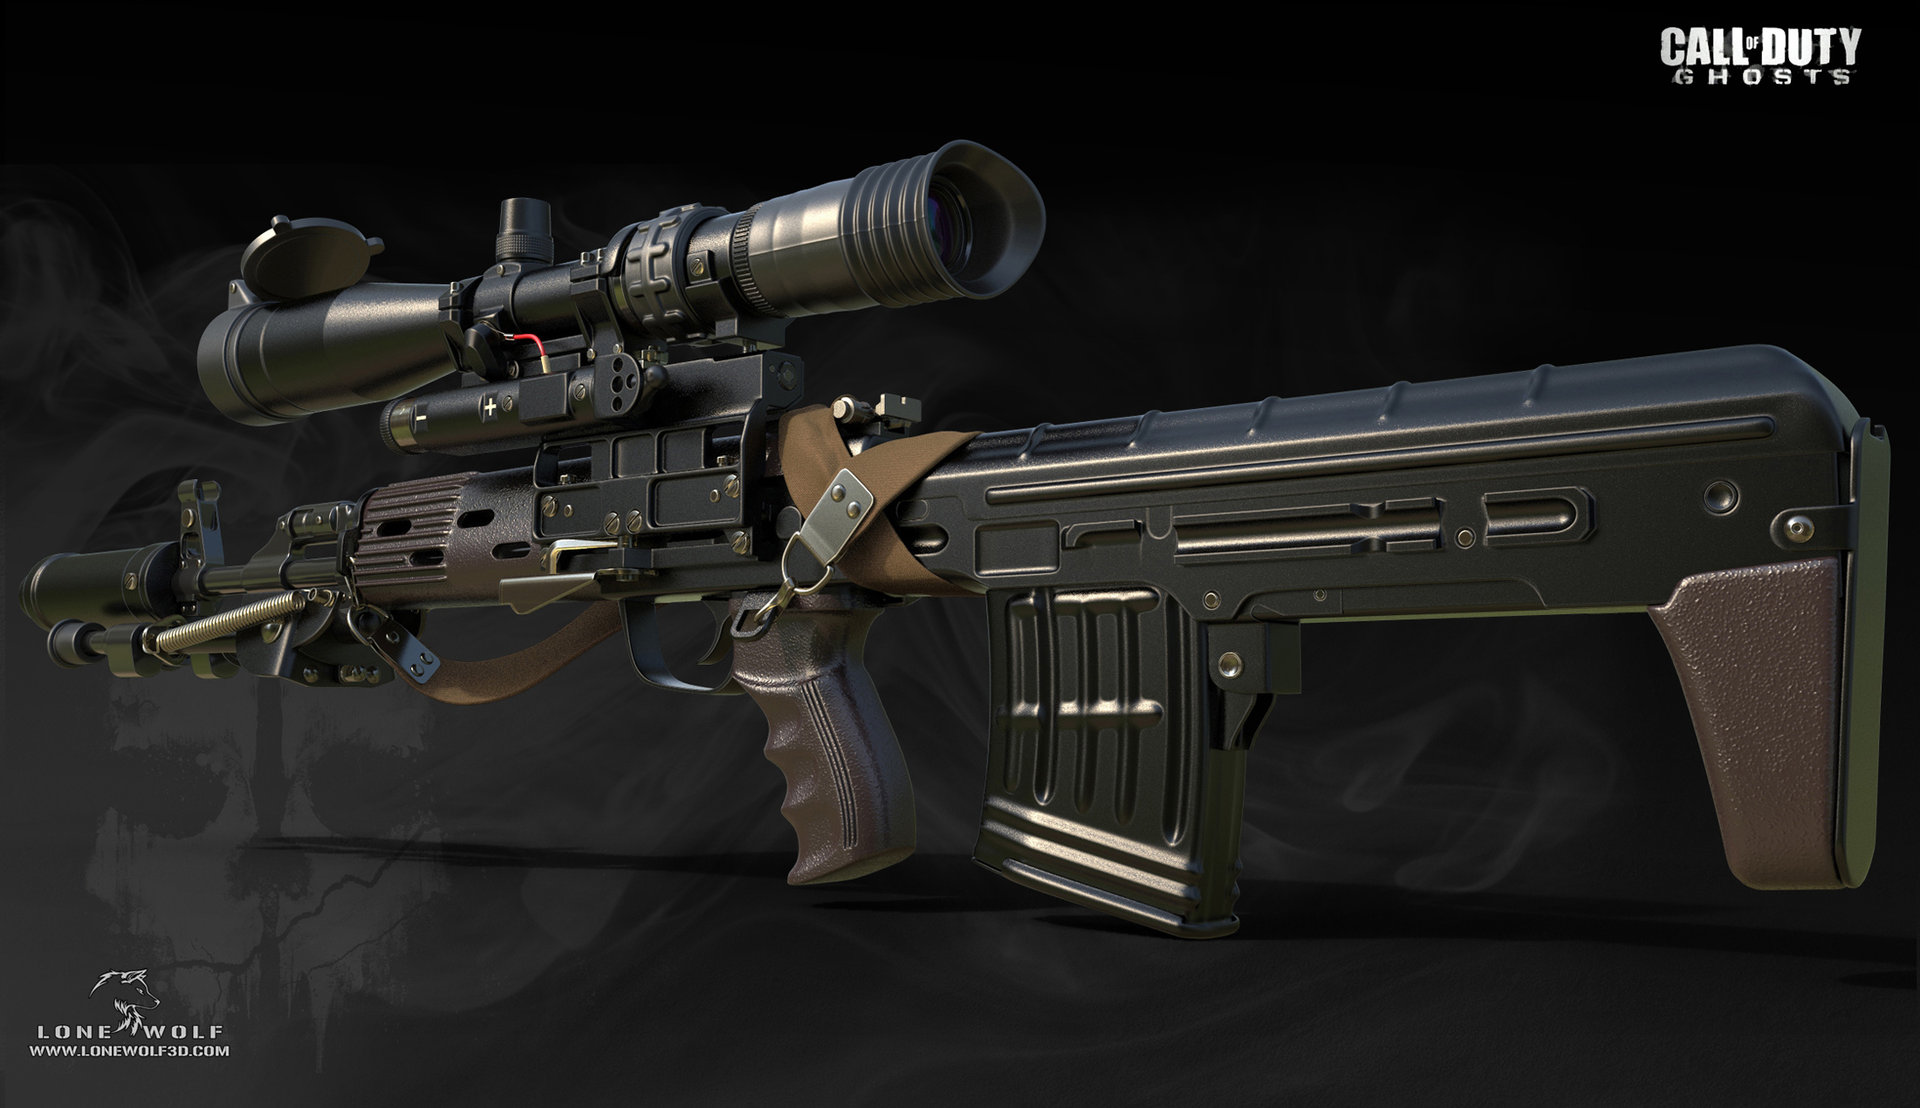 Call of duty ghosts dragunov 01 2